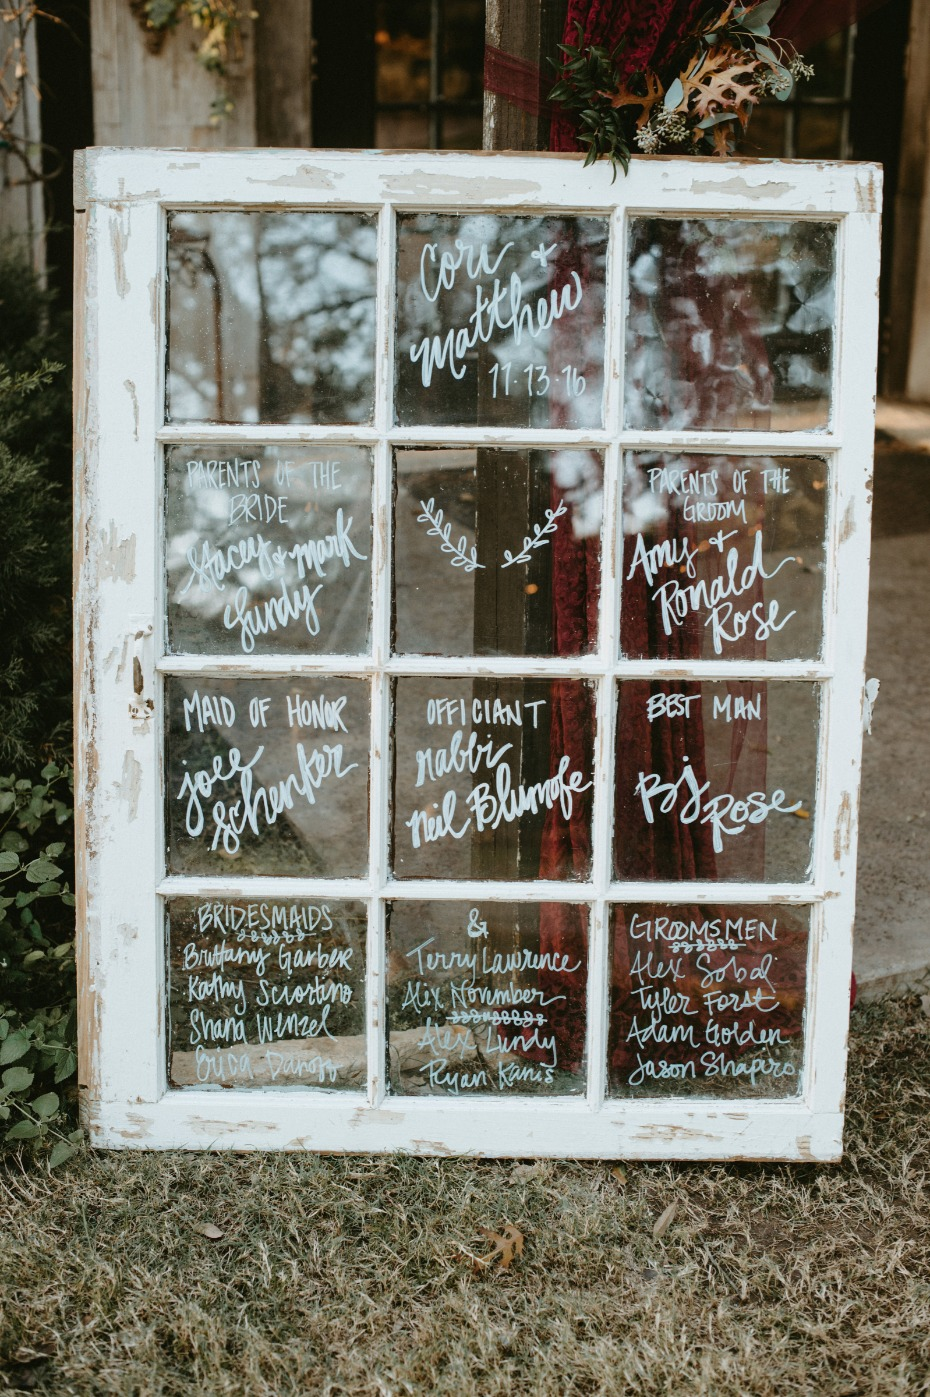 Use a vintage window to introduce your wedding party